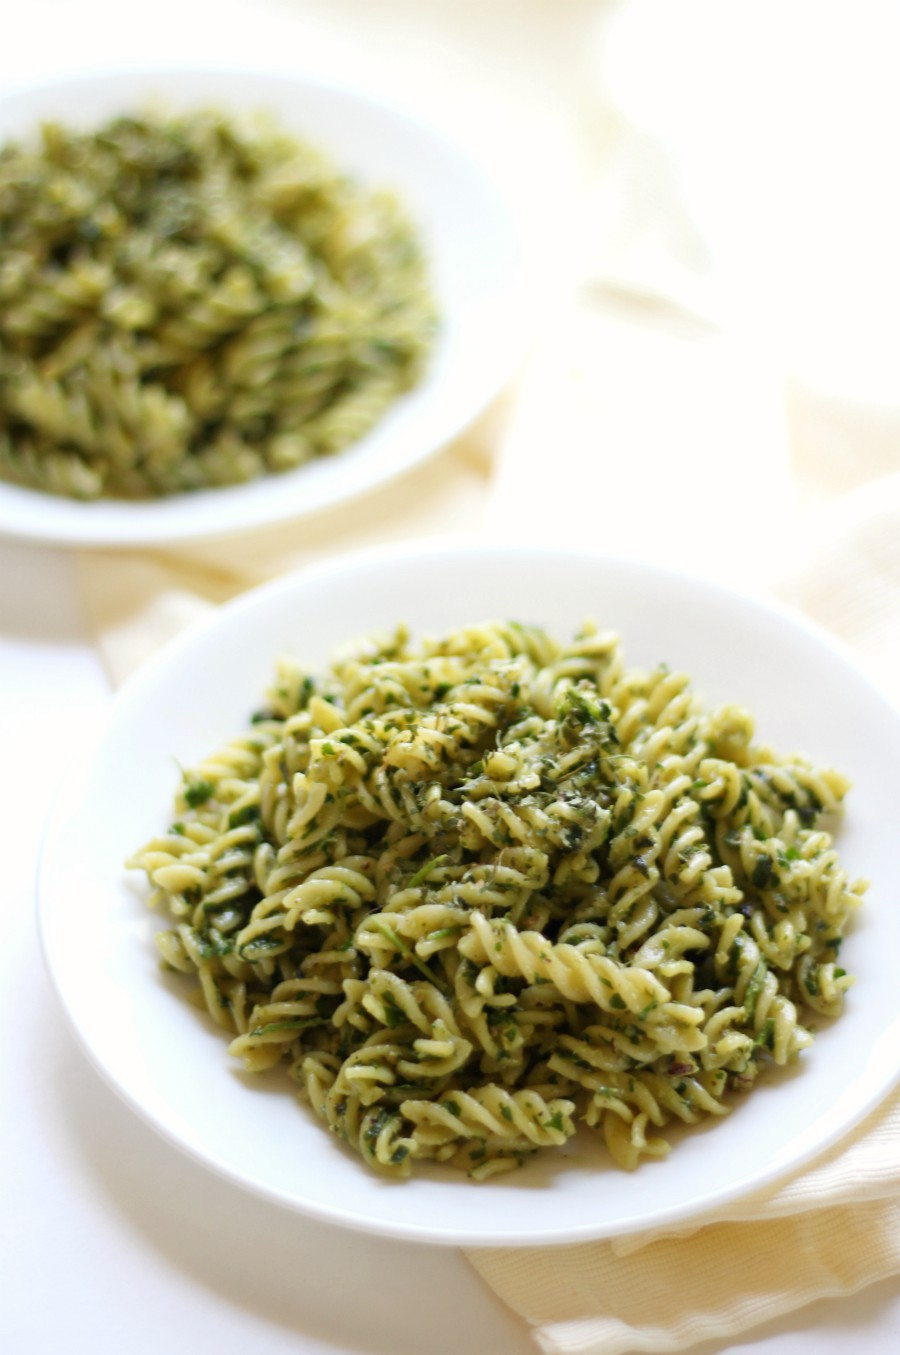 "Easy Gluten-Free Vegan Pesto Pasta | Strength and Sunshine @RebeccaGF666 A quick, delicious, Easy Gluten-Free Vegan Pesto Pasta recipe that can be ready and on the table in 10 minutes! A healthier dairy-free pesto with the rich flavors of olive oil, walnuts, fresh herbs, and spices will have you saying ""good-bye"" to boring pasta dinners! #pesto #pasta #glutenfree #vegan"